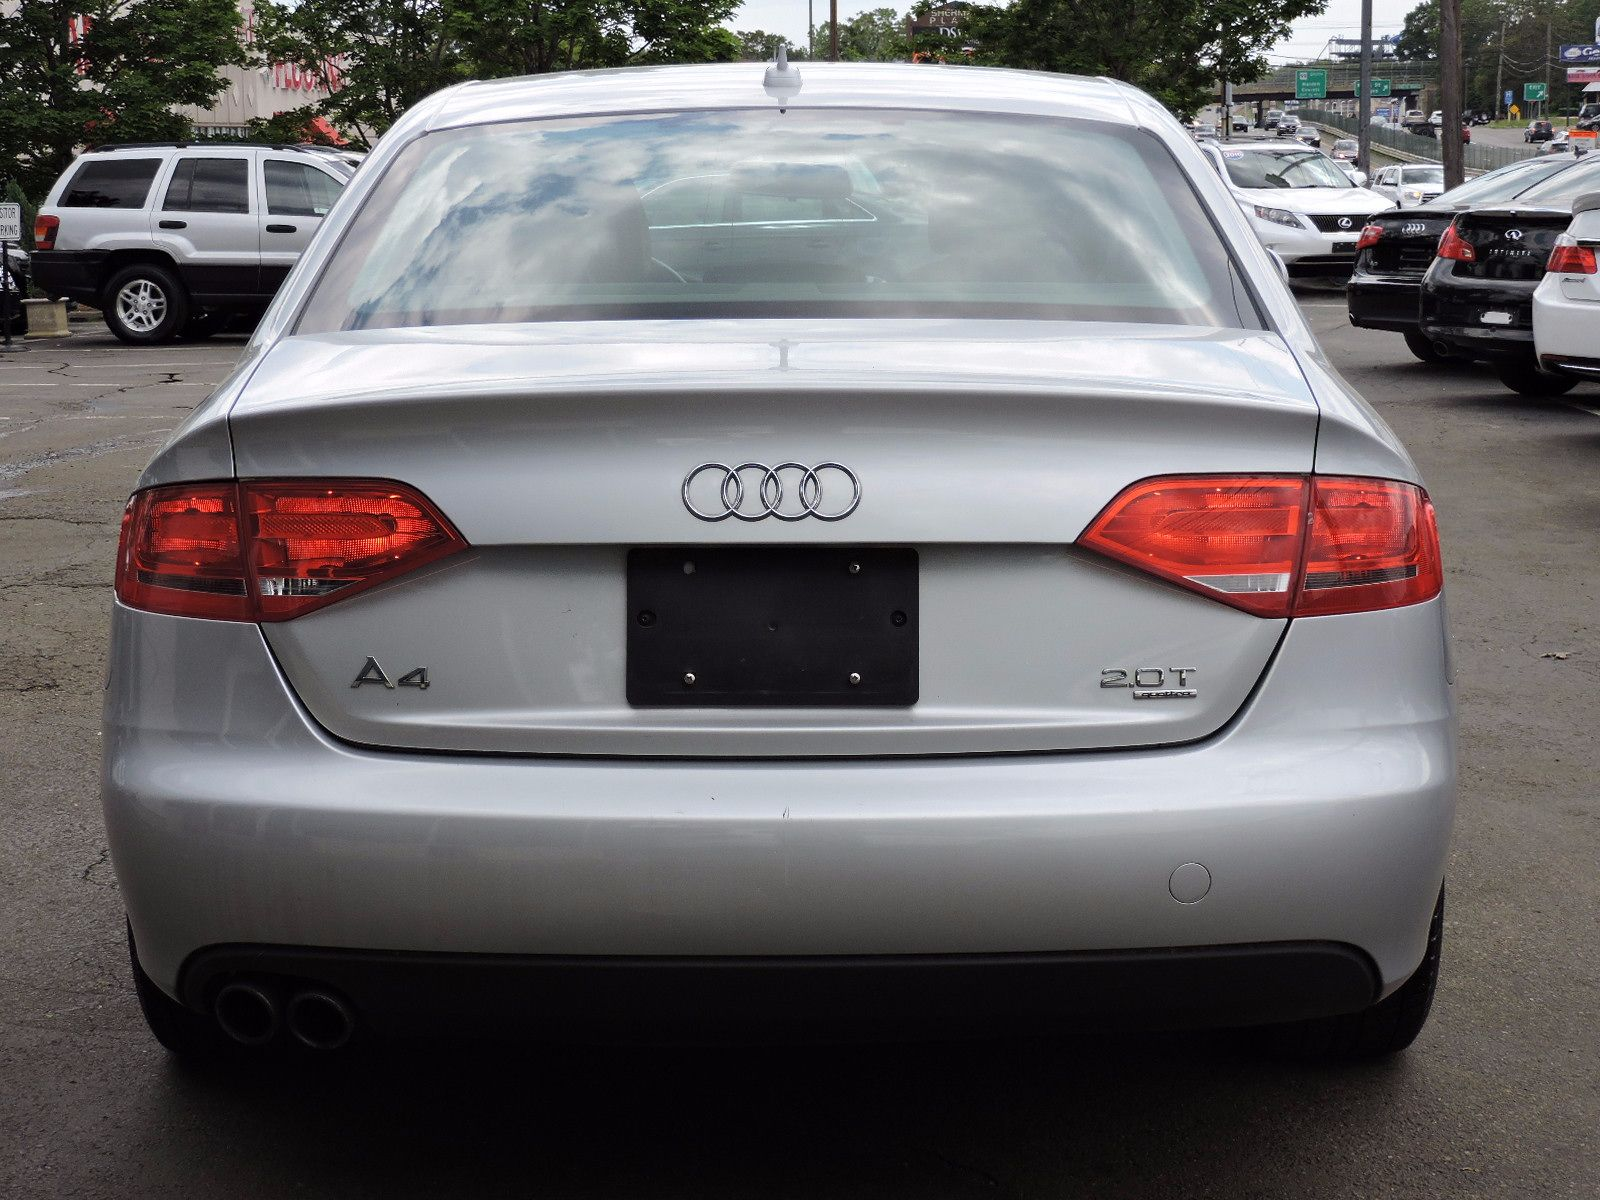 2011 Audi A4 2.0T - Quattro - All Wheel Drive